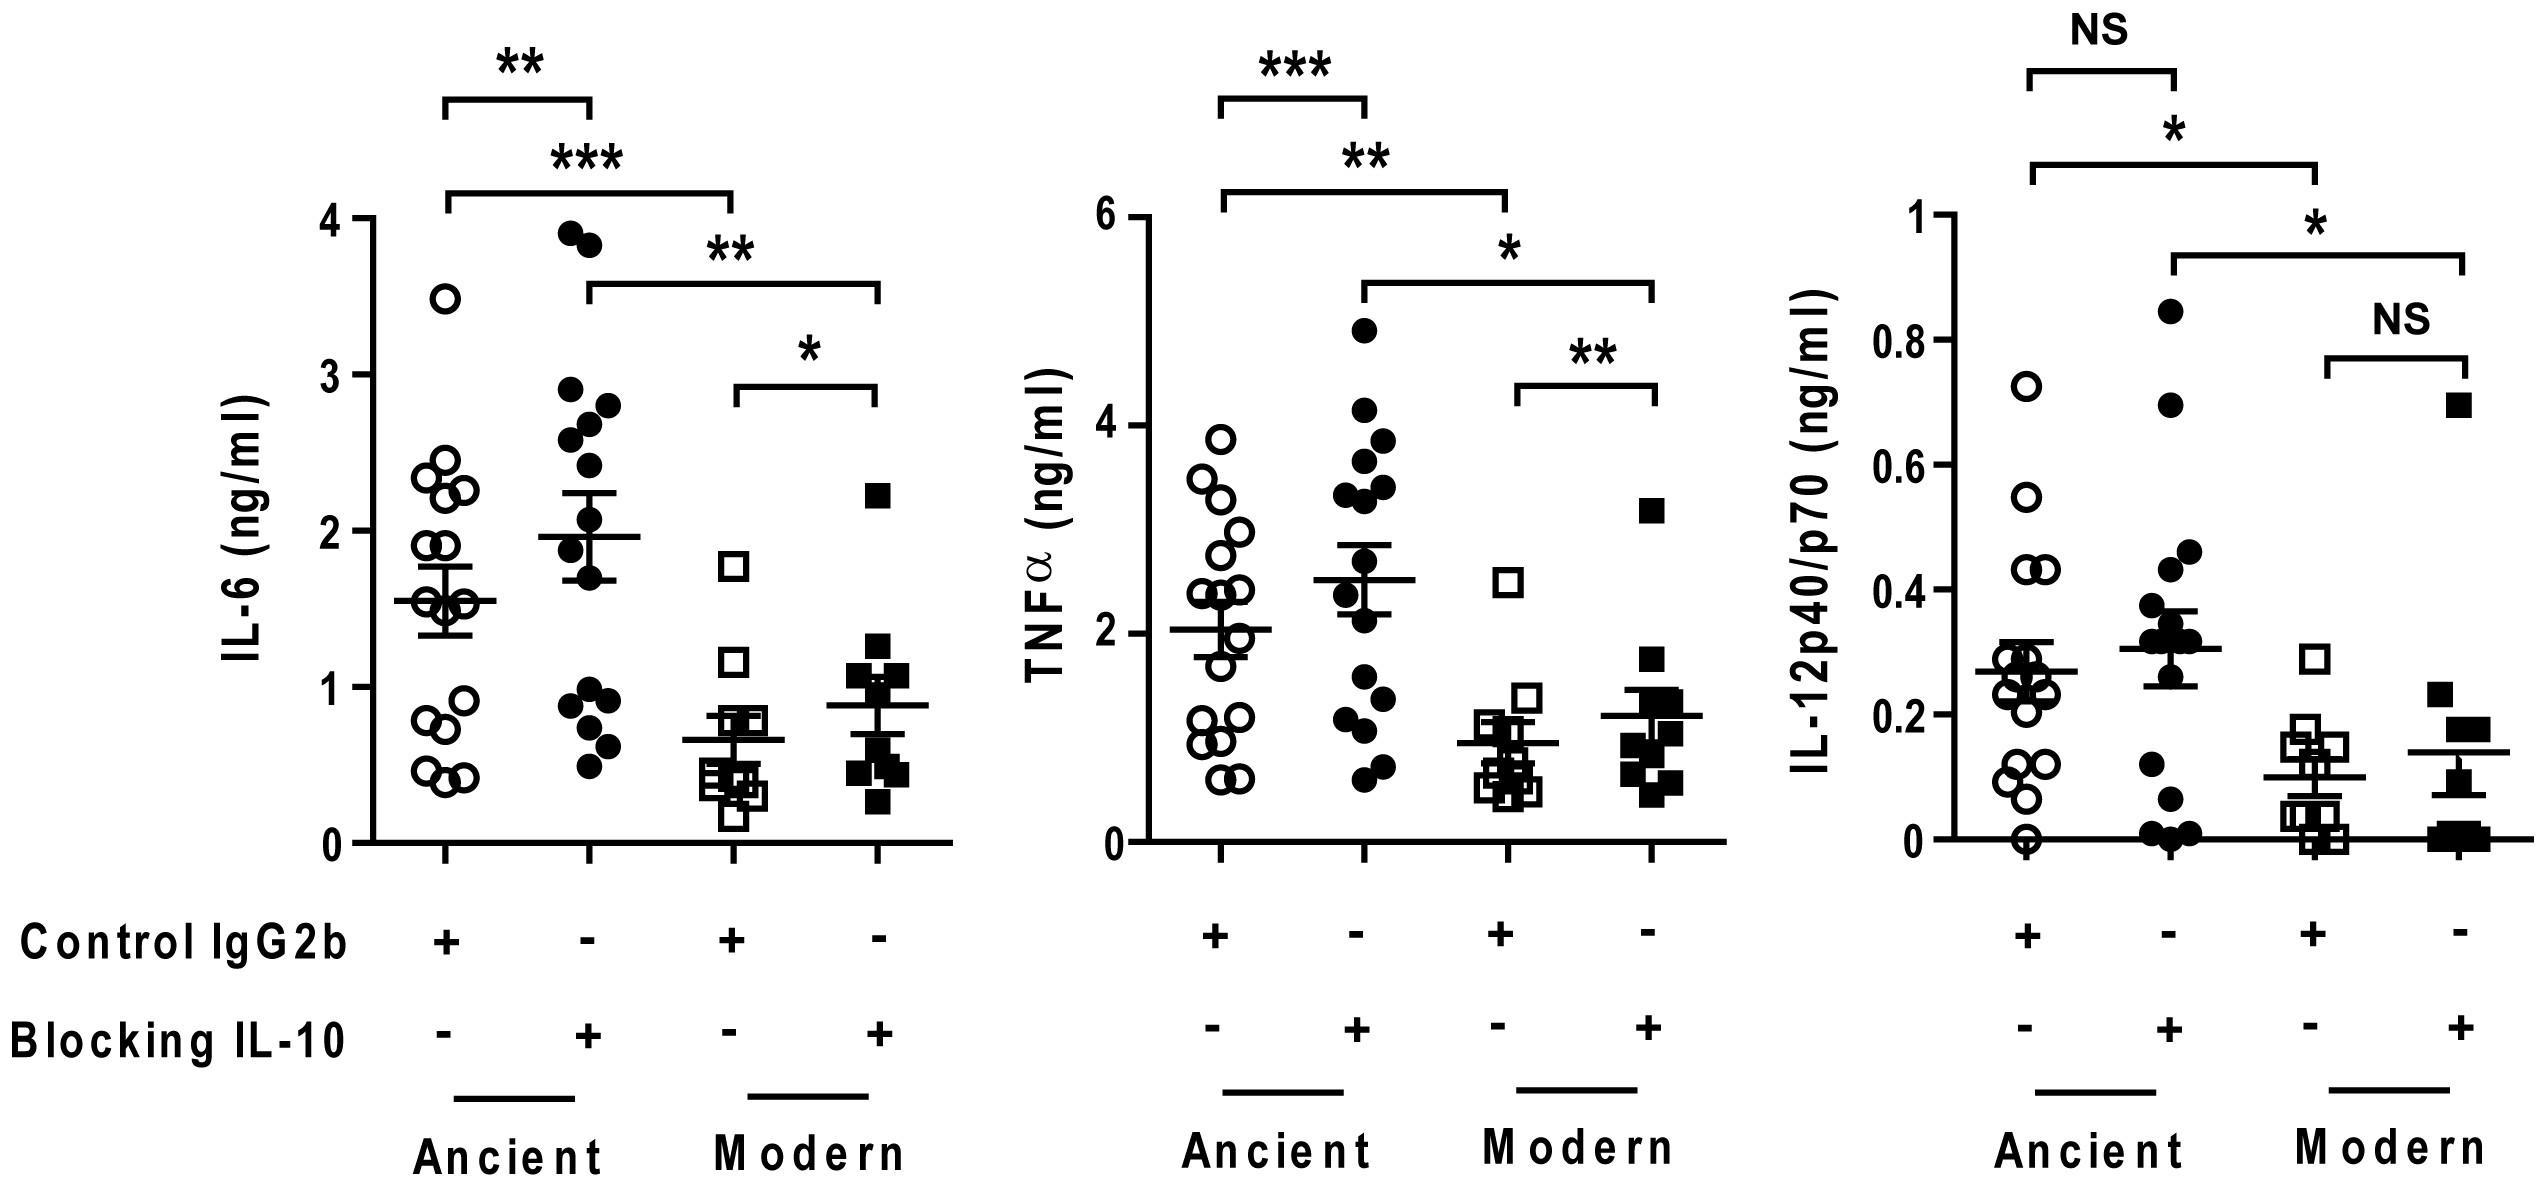 The delayed inflammatory response of modern lineage is not due to IL-10.